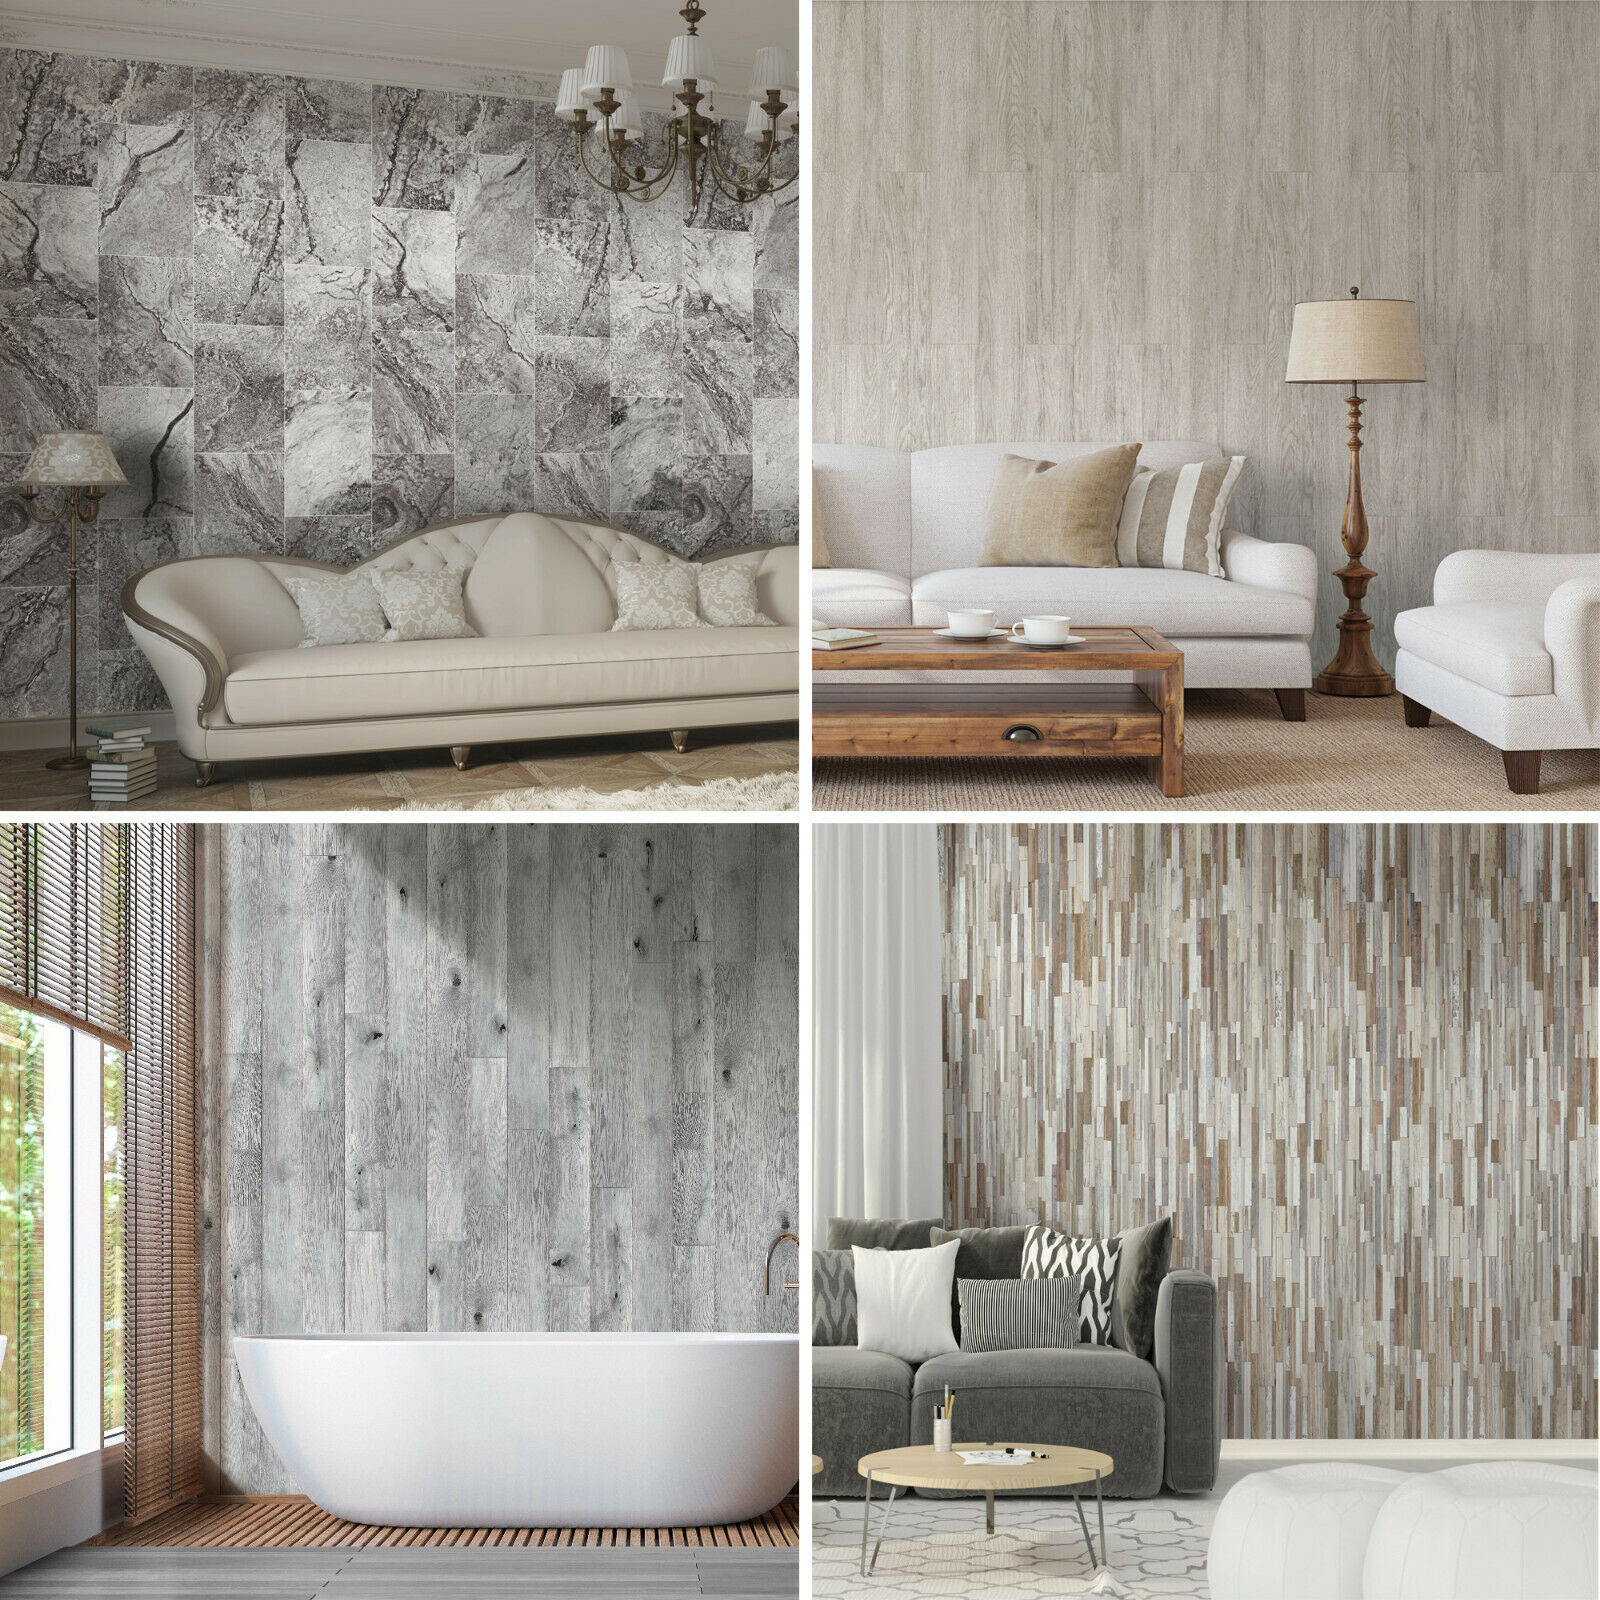 Wood Effect Modern Bathroom Cladding Grey White Tile Pvc Shower Wet Wall Panels Ebay